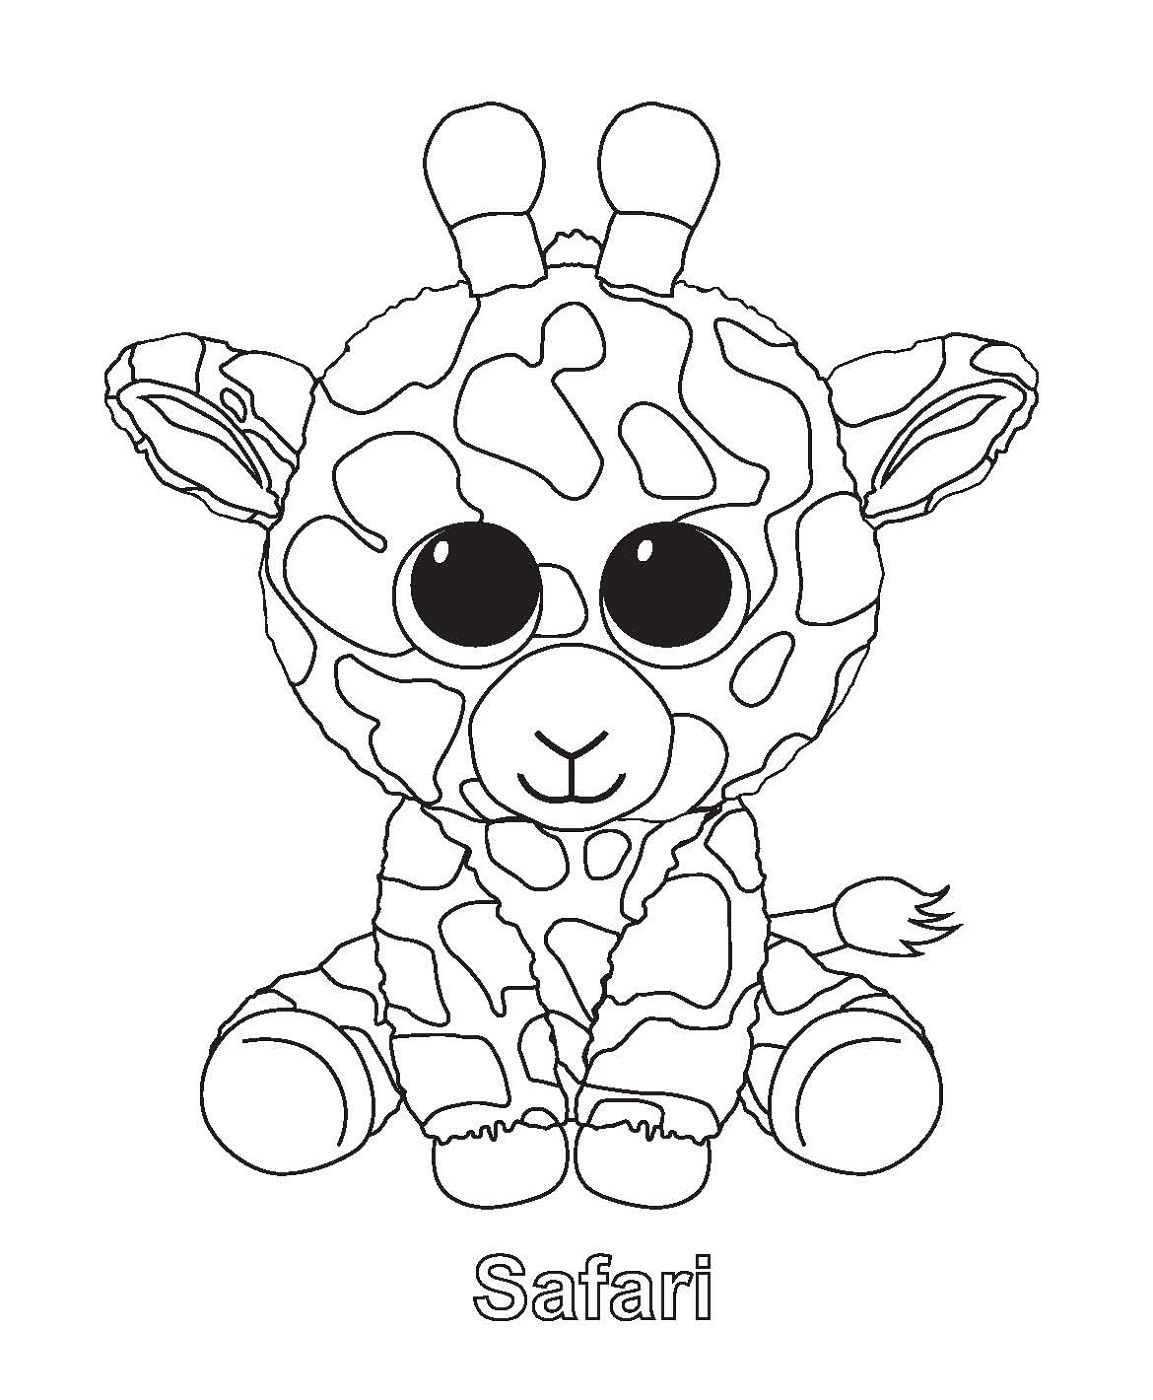 Safari Beanie Boo Coloring Pages